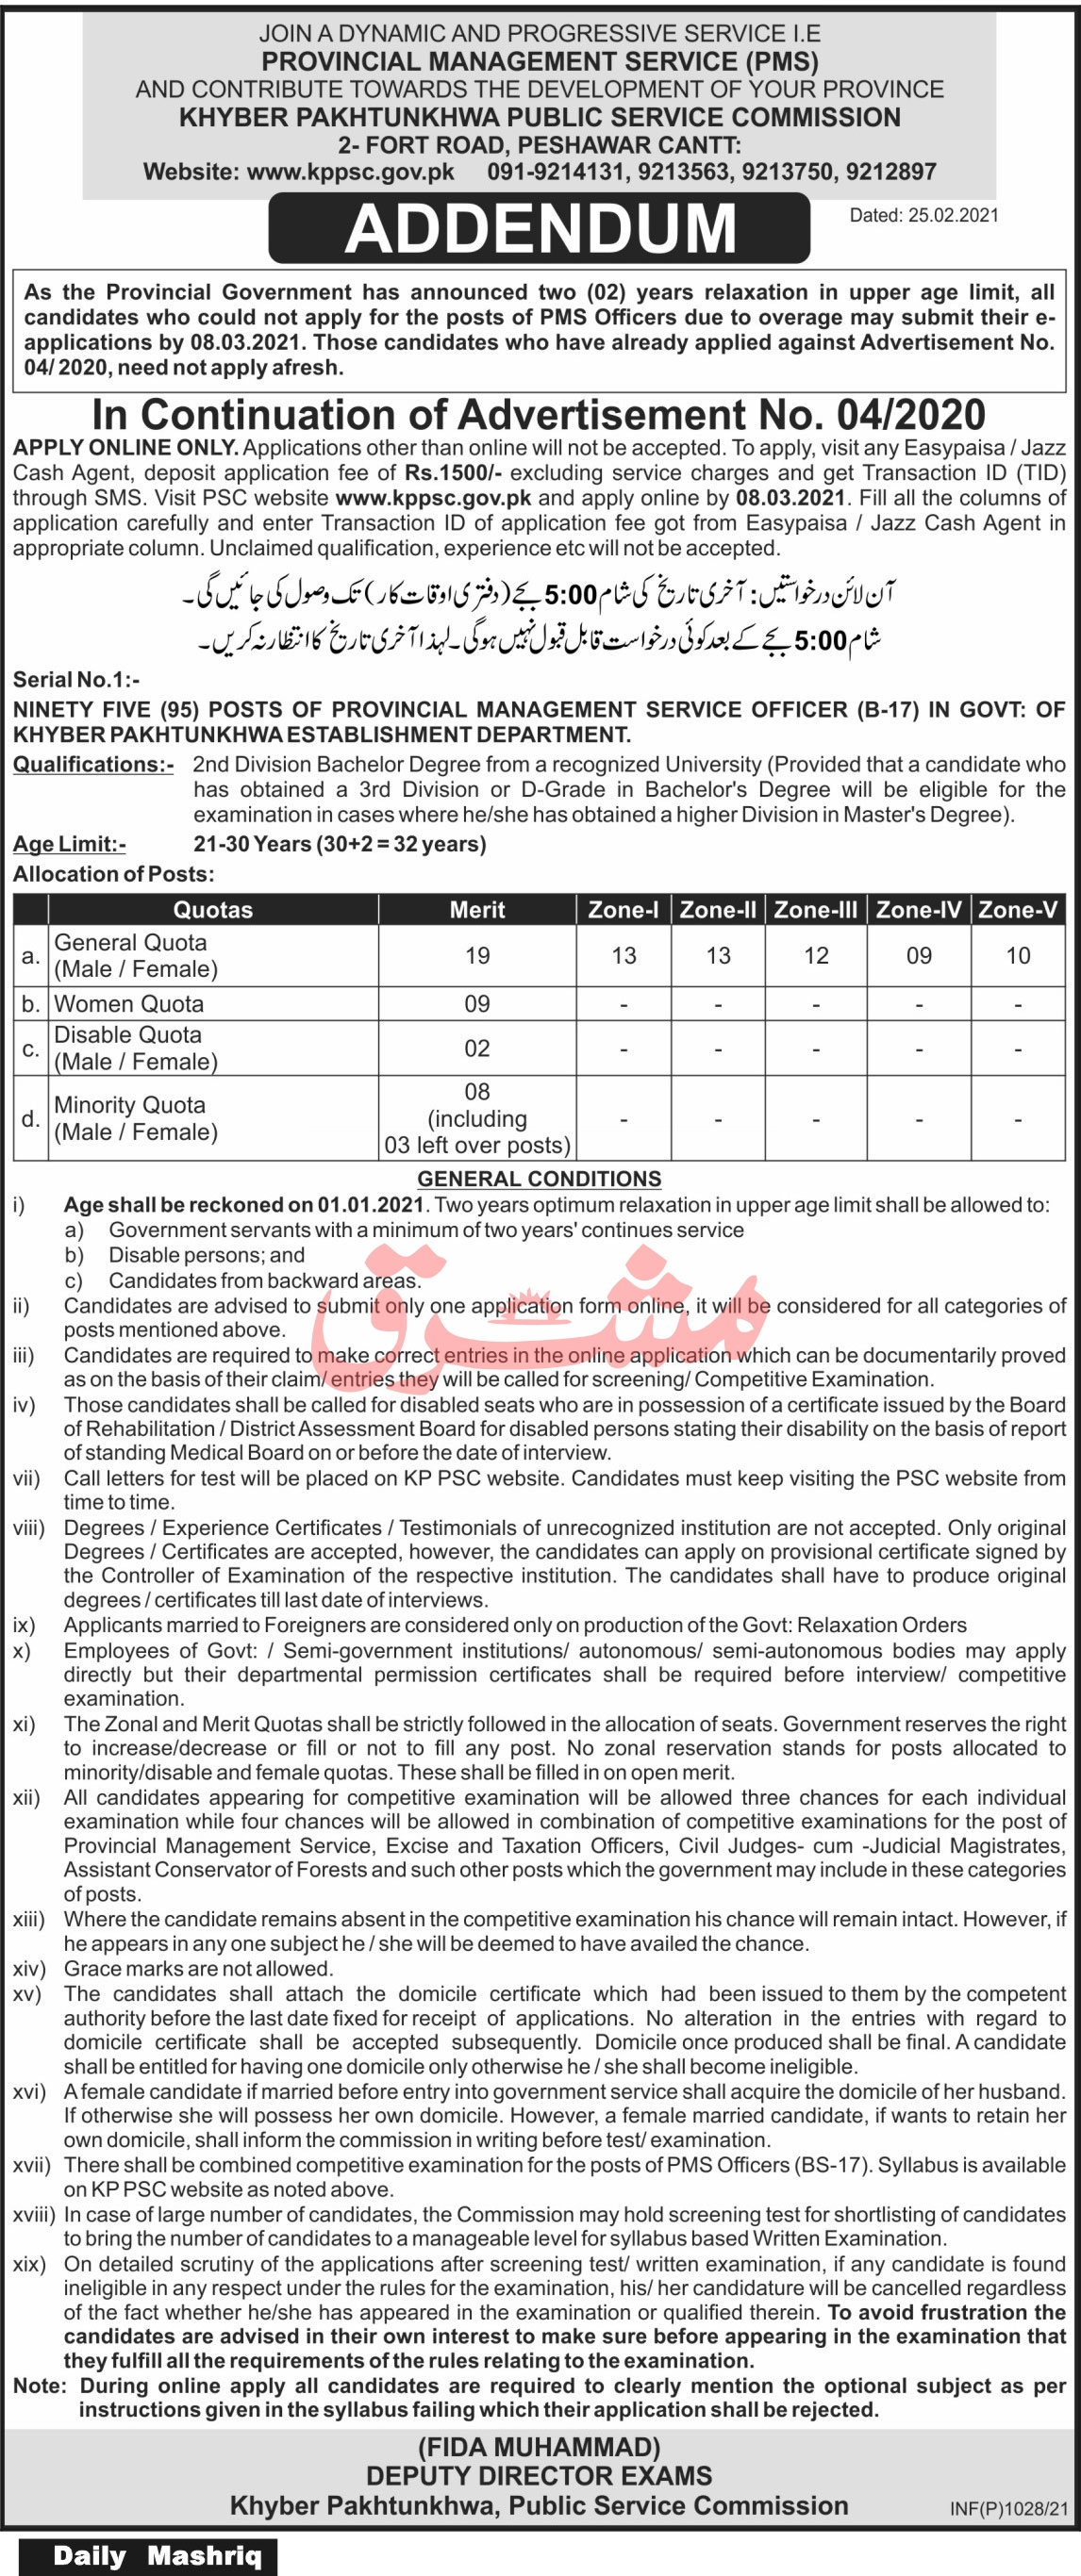 Download KPPSC Jobs 2021 Application Form :- www.kppsc.gov.pk - Khyber Pakhtunkhwa Public Service Commission Jobs 2021 in Pakistan - PMS Officer Jobs 2021